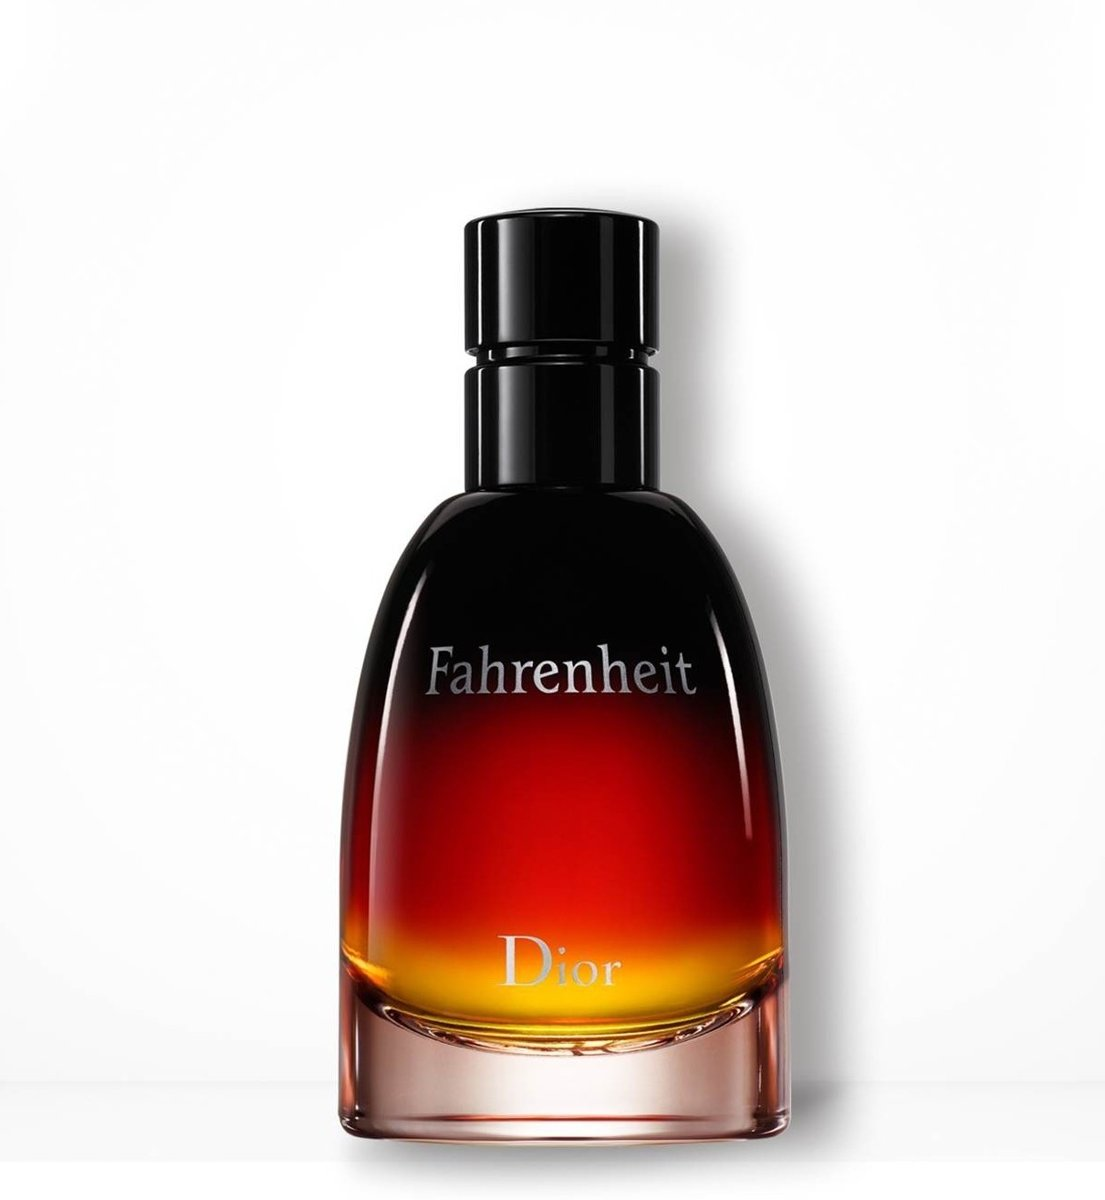 Christian dior Fahrenheit 75 ml - Eau de parfum - for Men